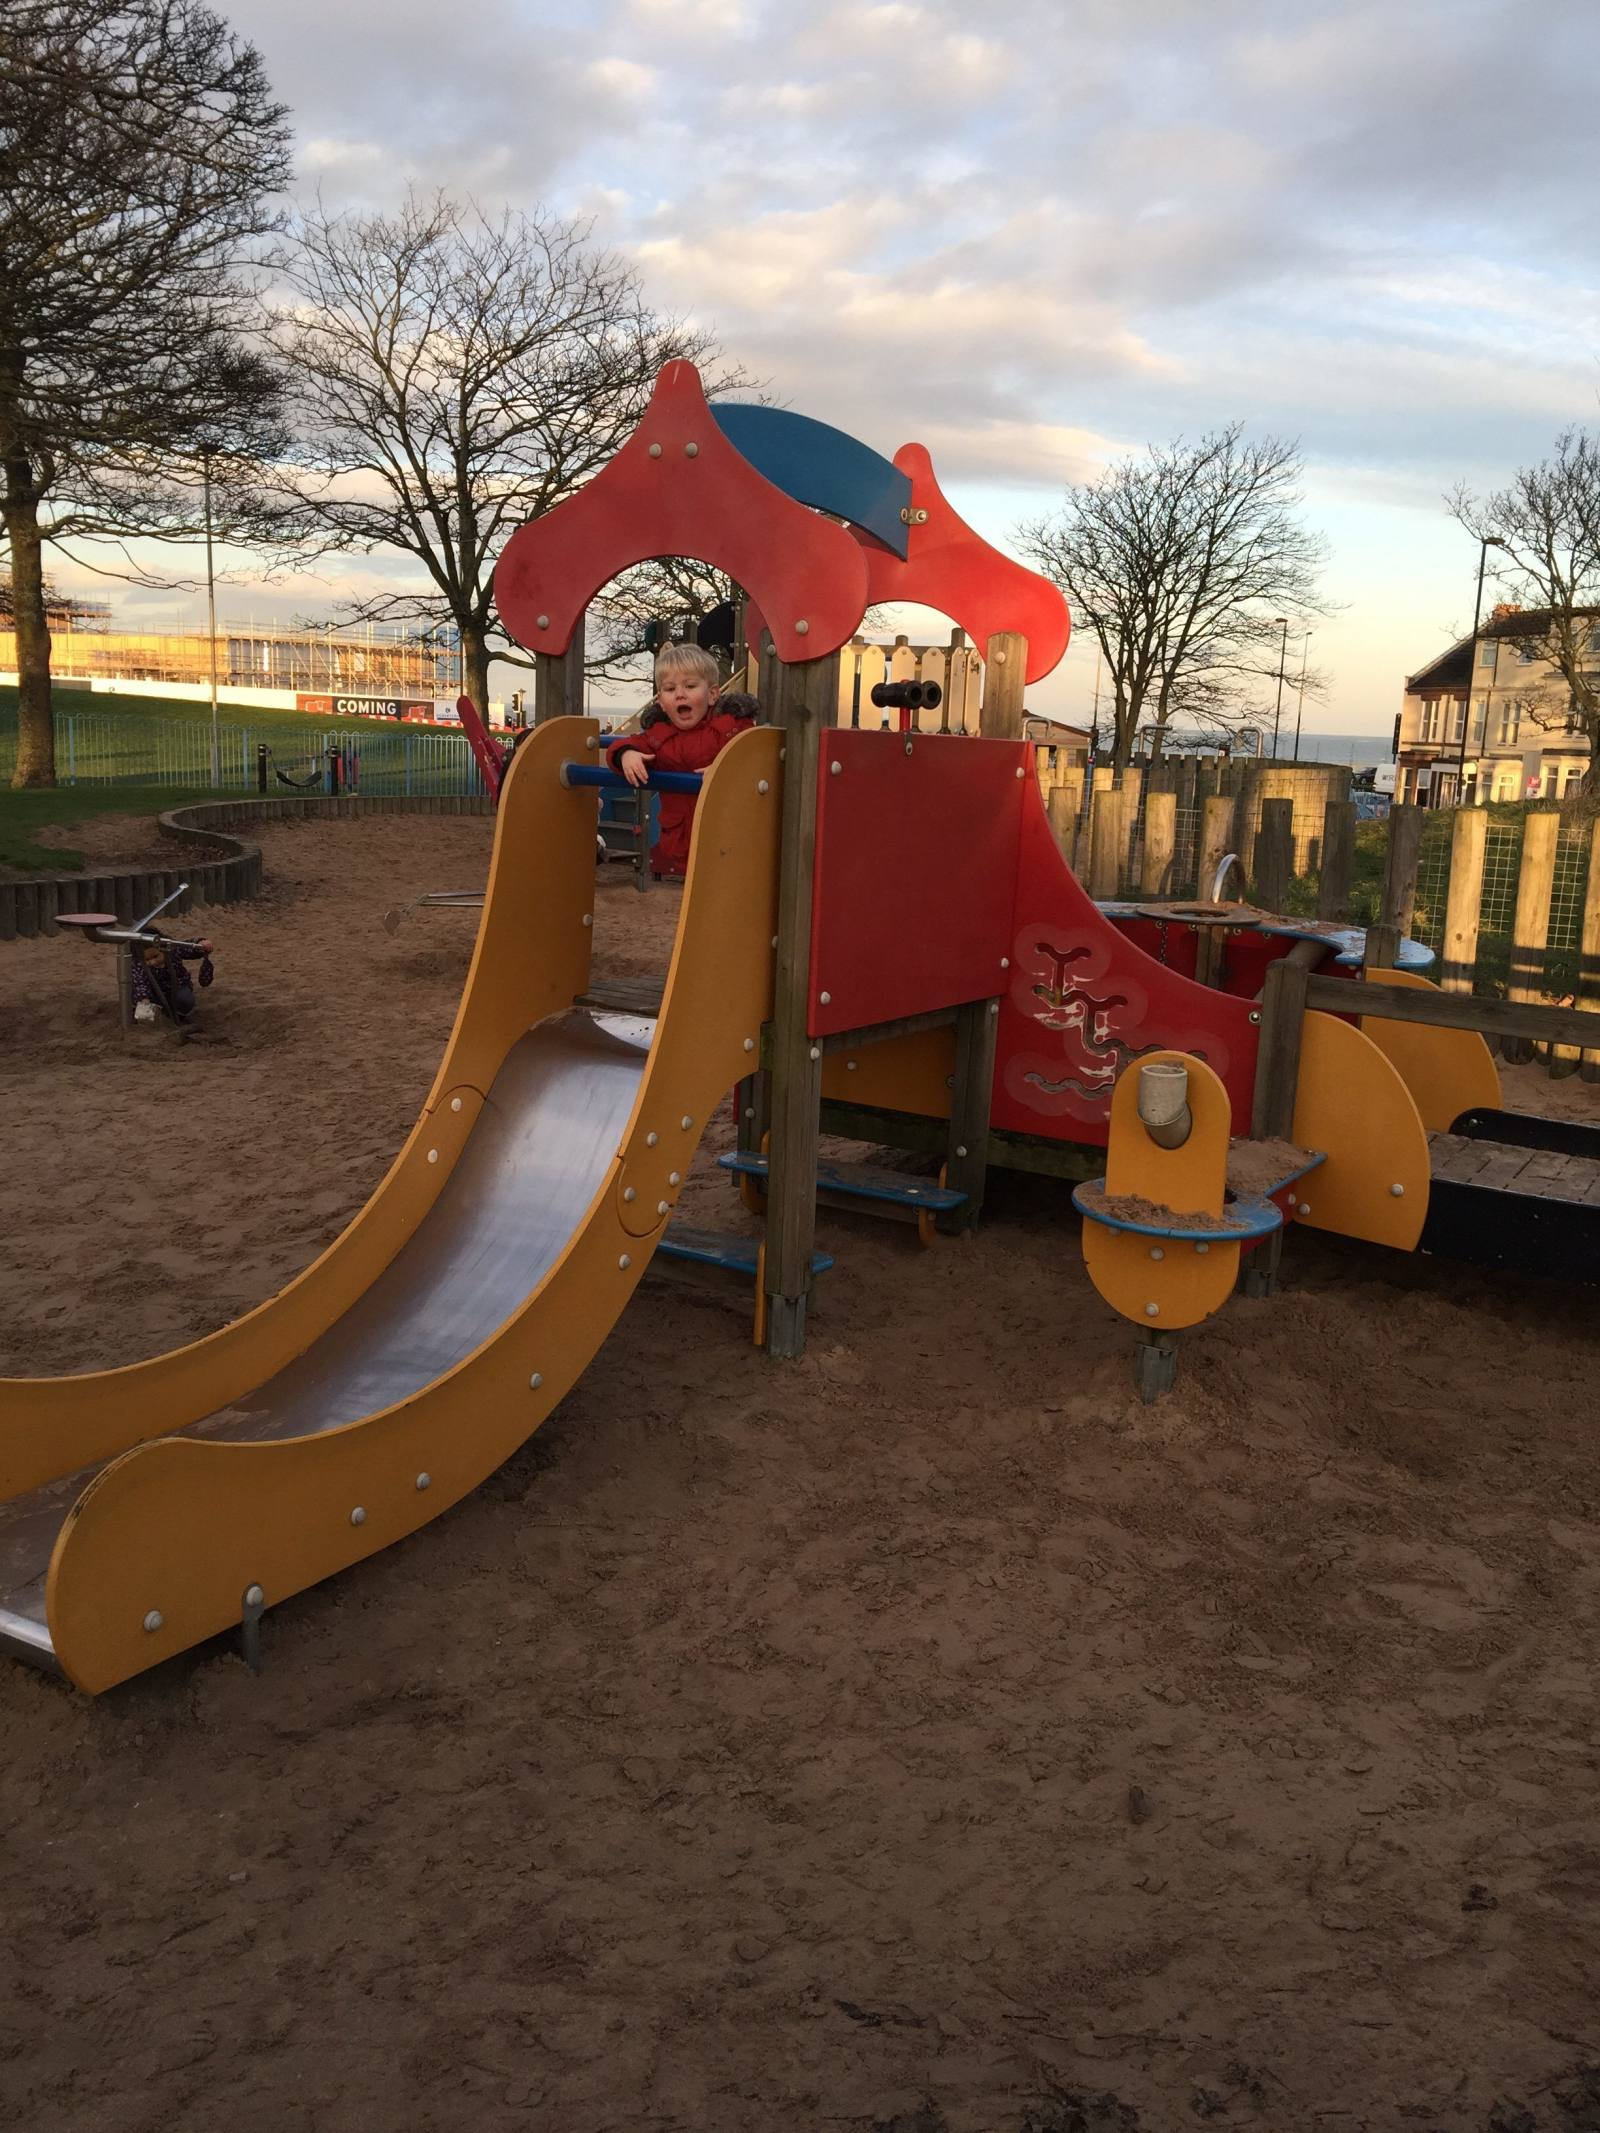 Toddlers love the park